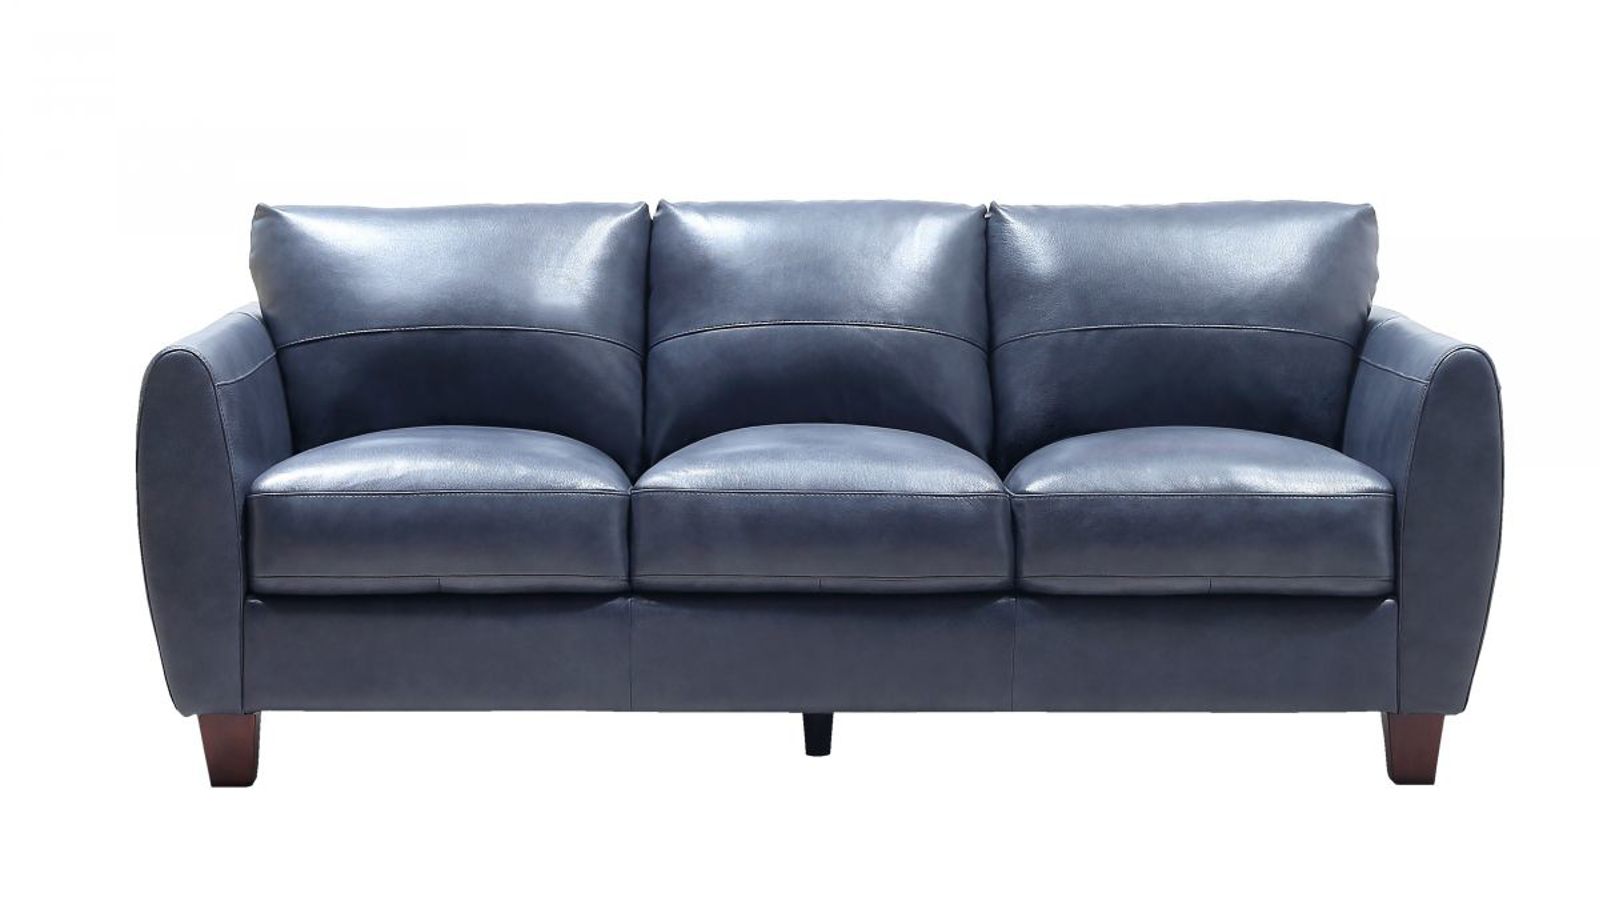 Picture of Georgetown Traverse Sofa